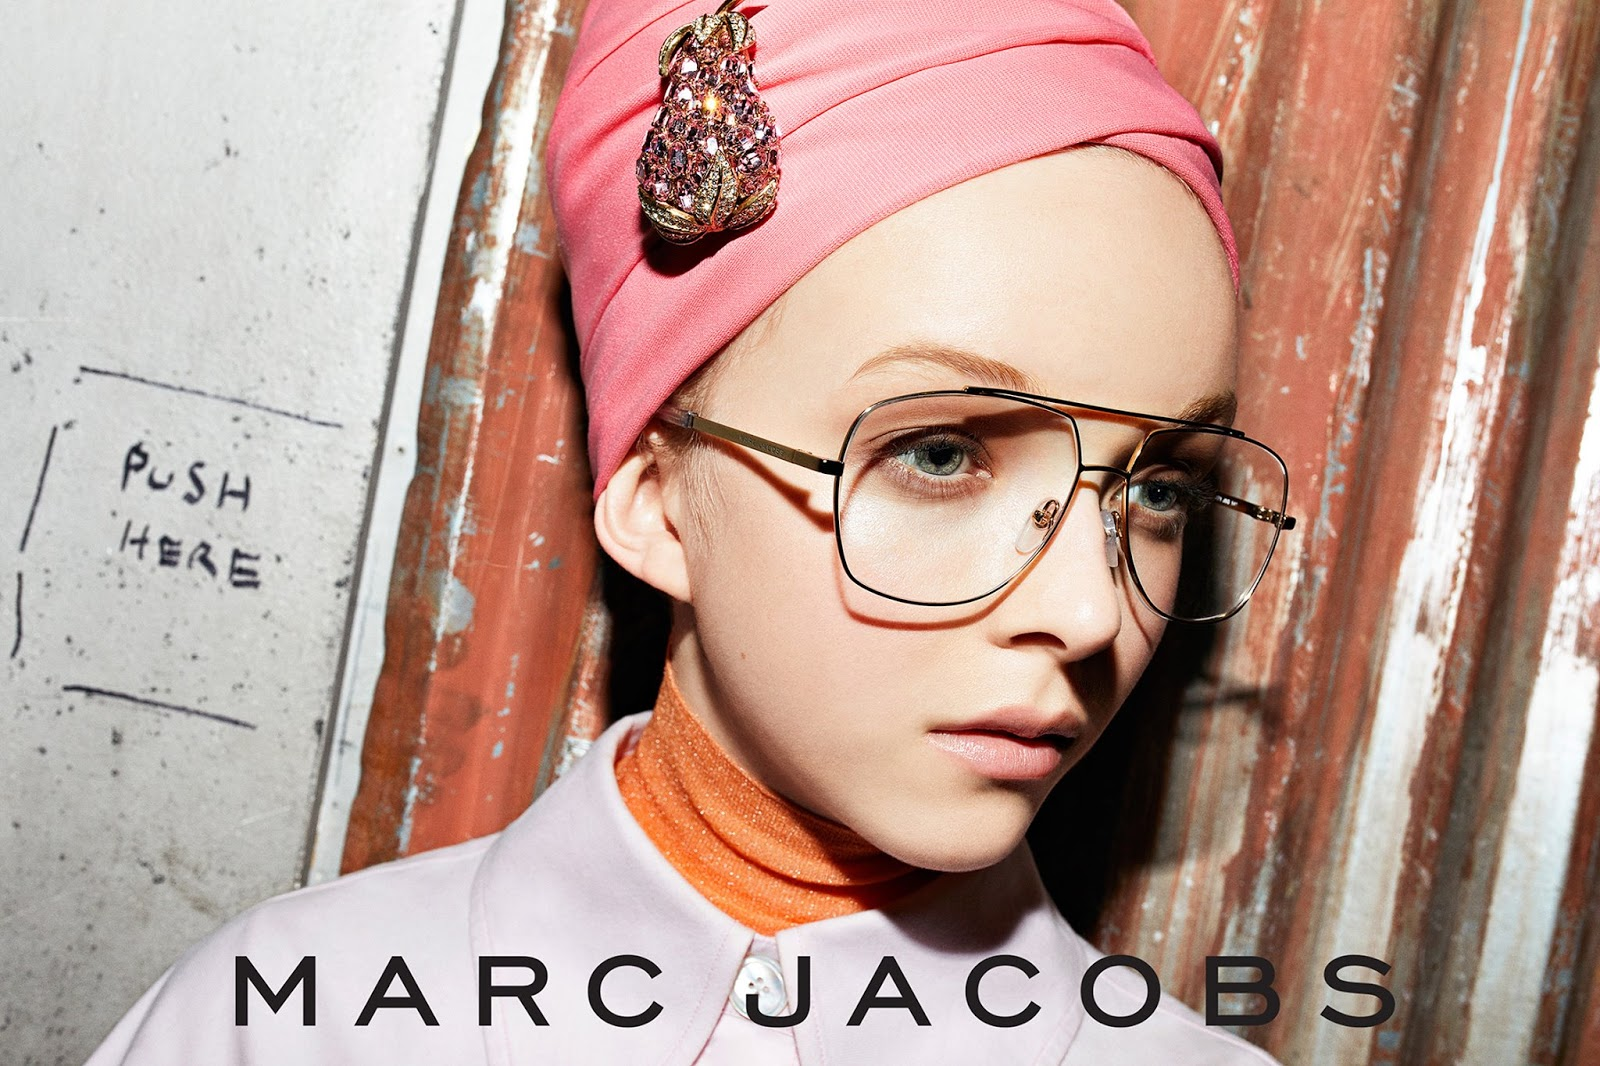 Marc Jacobs Eyewear & Watch Campaign 2018